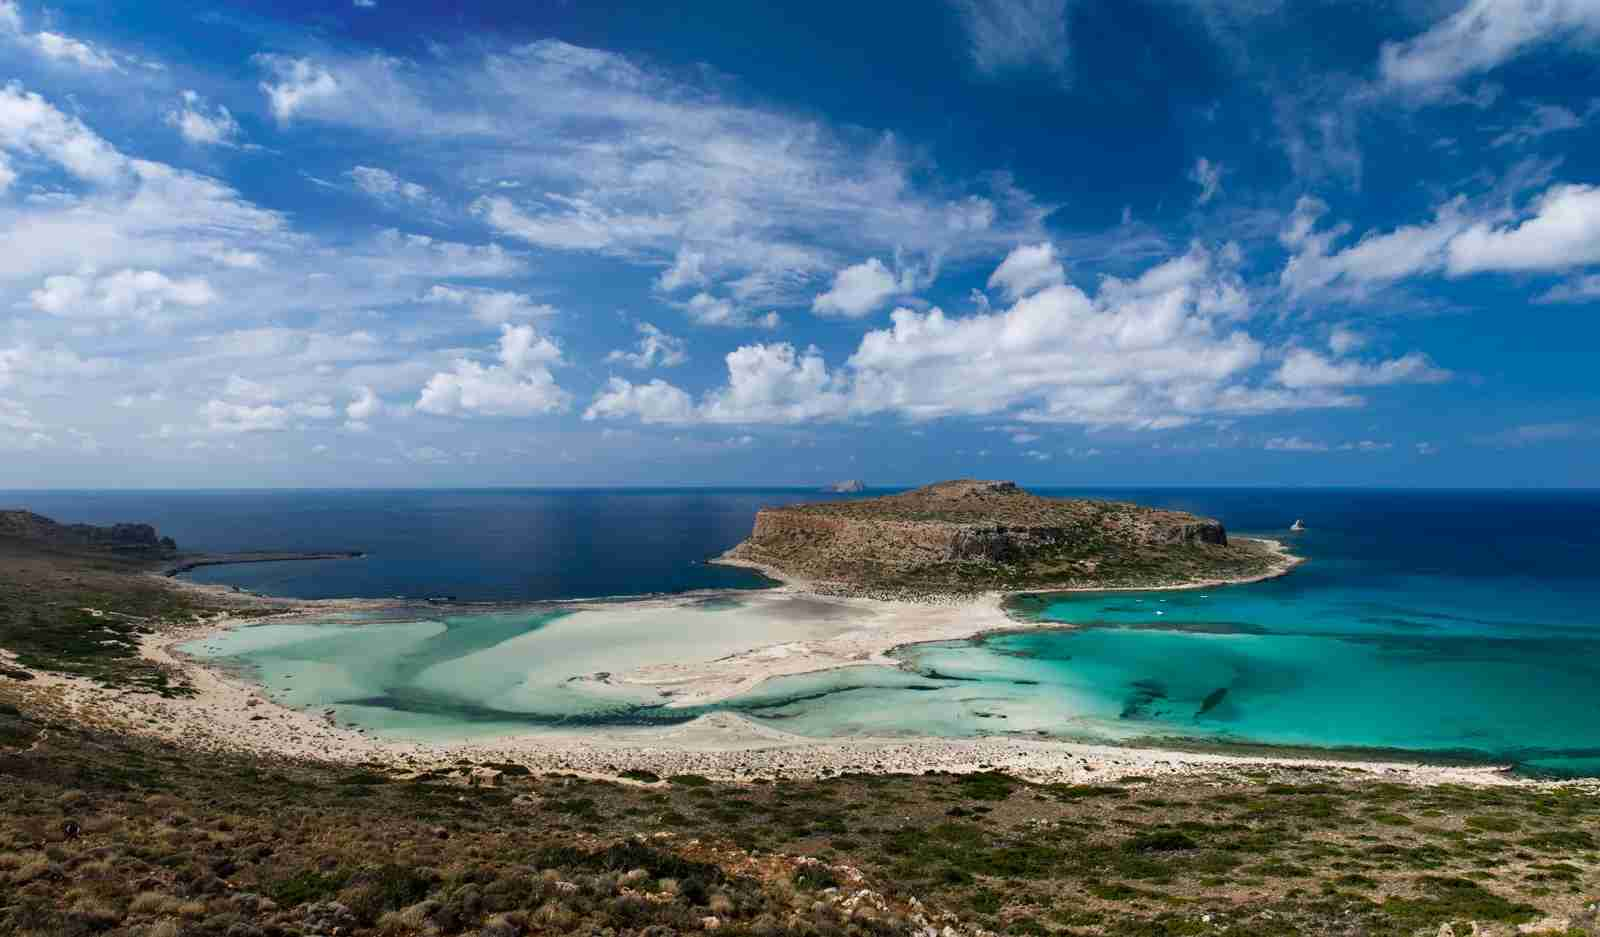 Balos Beach. (Photo by tobiasjo / Getty Images)